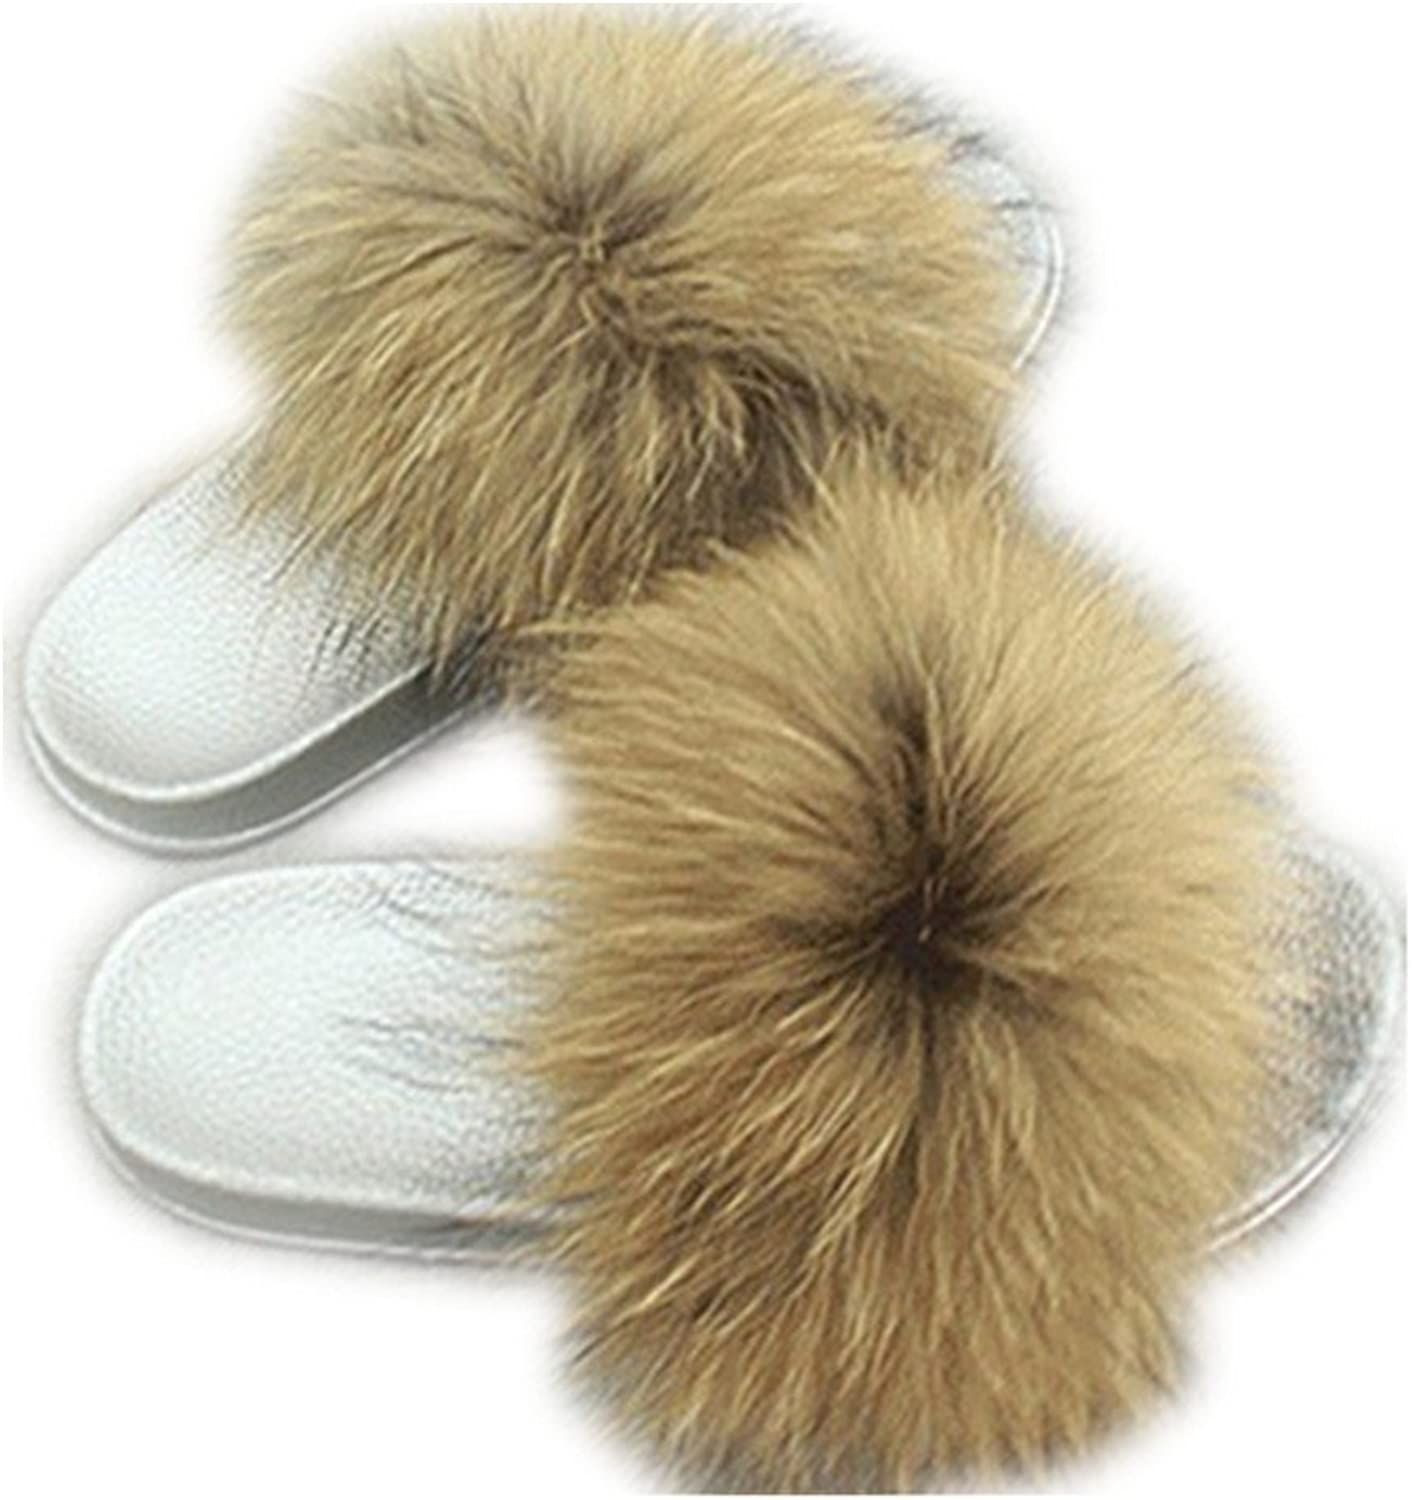 QMFUR Women Real Fox Fur Slippers Fashion Slides Flat Silver Soft Summer shoes for Girls (12, Natural)